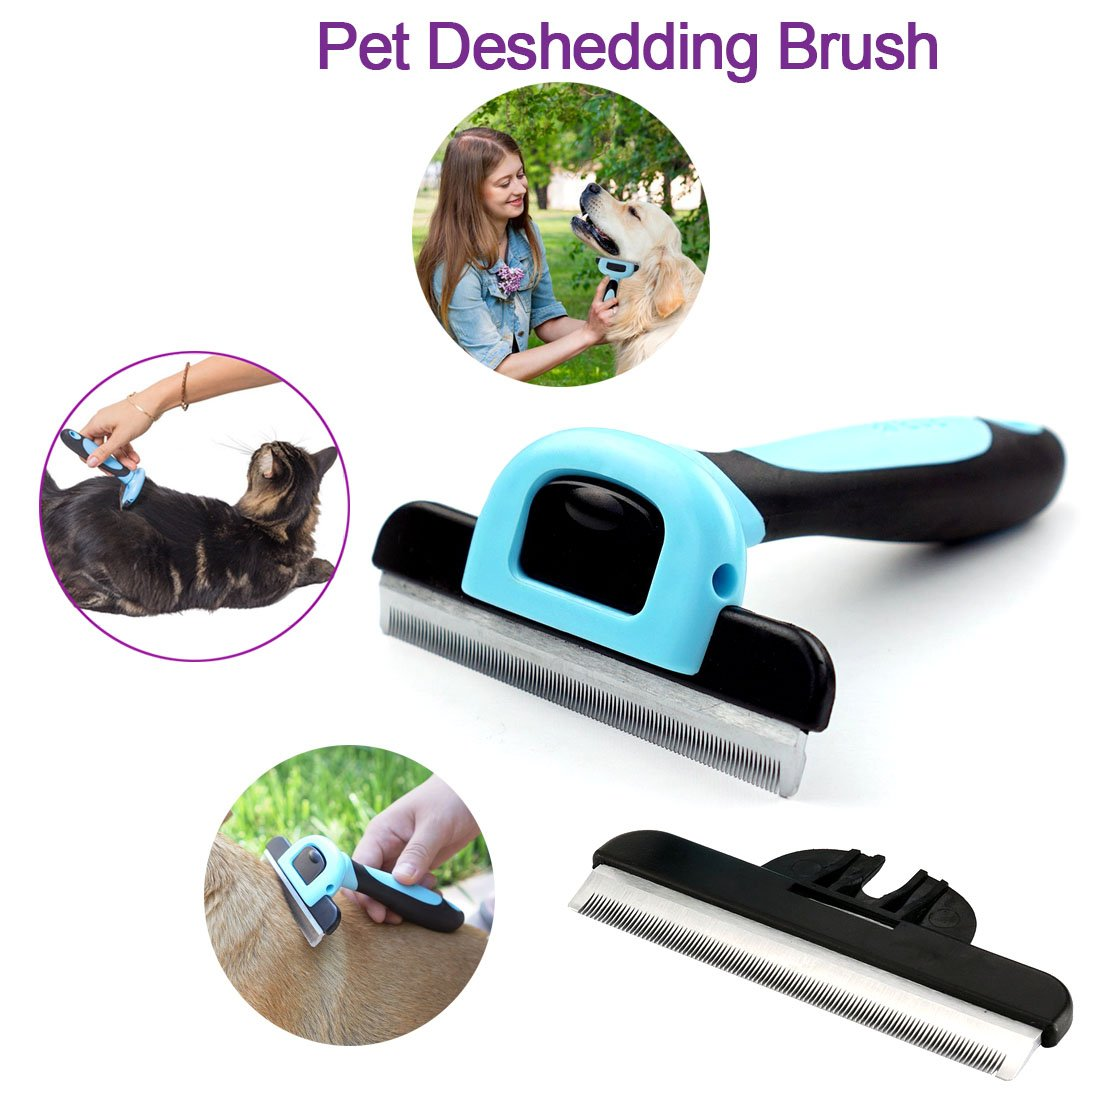 bluee Pet Shedding Tool Dog Hair Brush Grooming Comb,Toolisi Pet Grooming Brush Effectively Remove Up to 95 Stainless Steel Gentle Bristles Painless Shedding Comb Tool for Dogs and Cats, Horses and More Animals Coat Fur